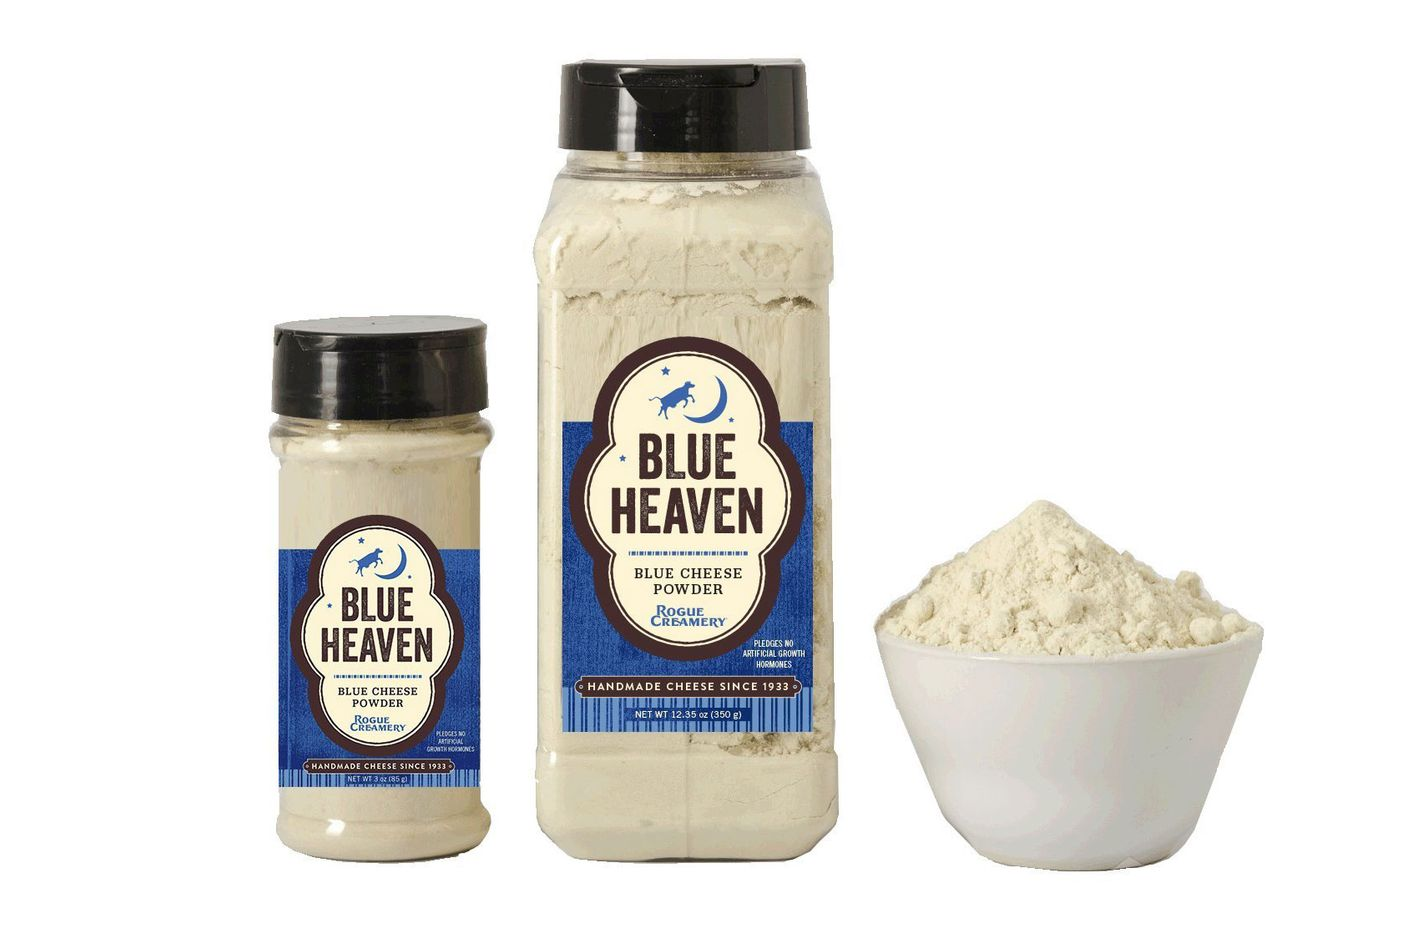 Rogue Creamery Blue Heaven Blue Cheese Powder